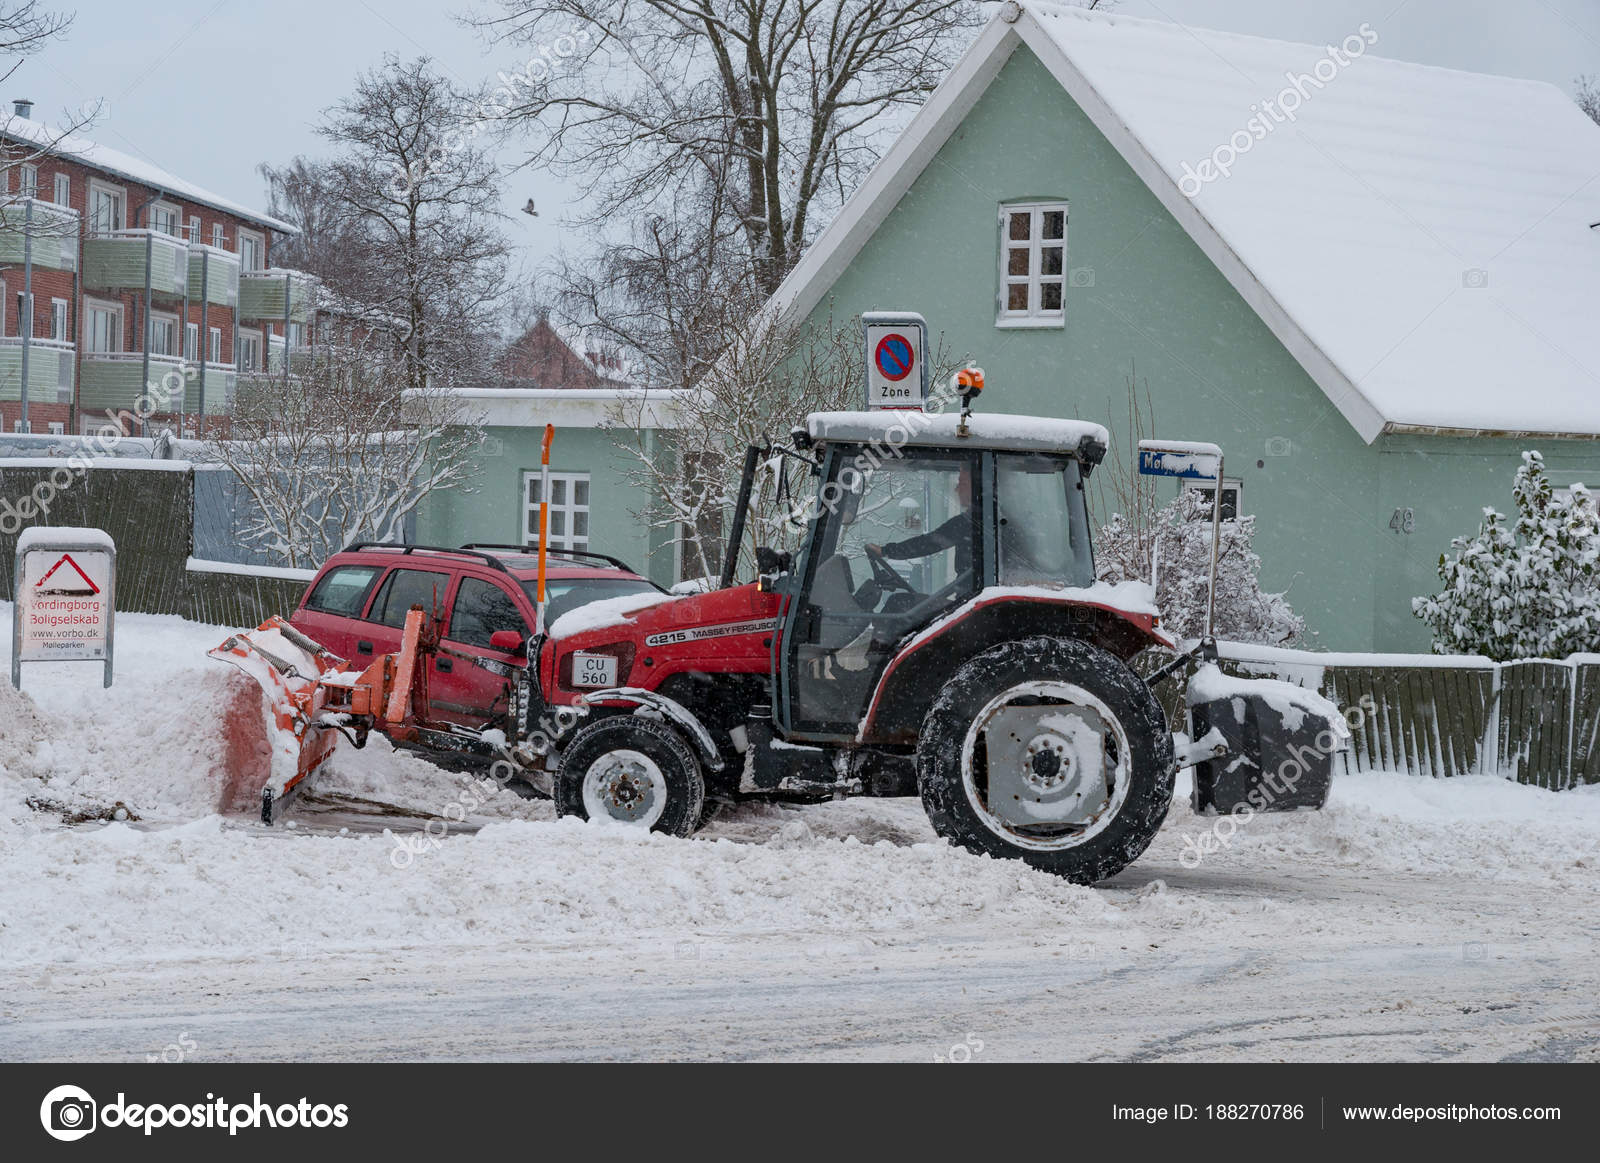 Worker on a tractor with a snow plow plowing snow – Stock